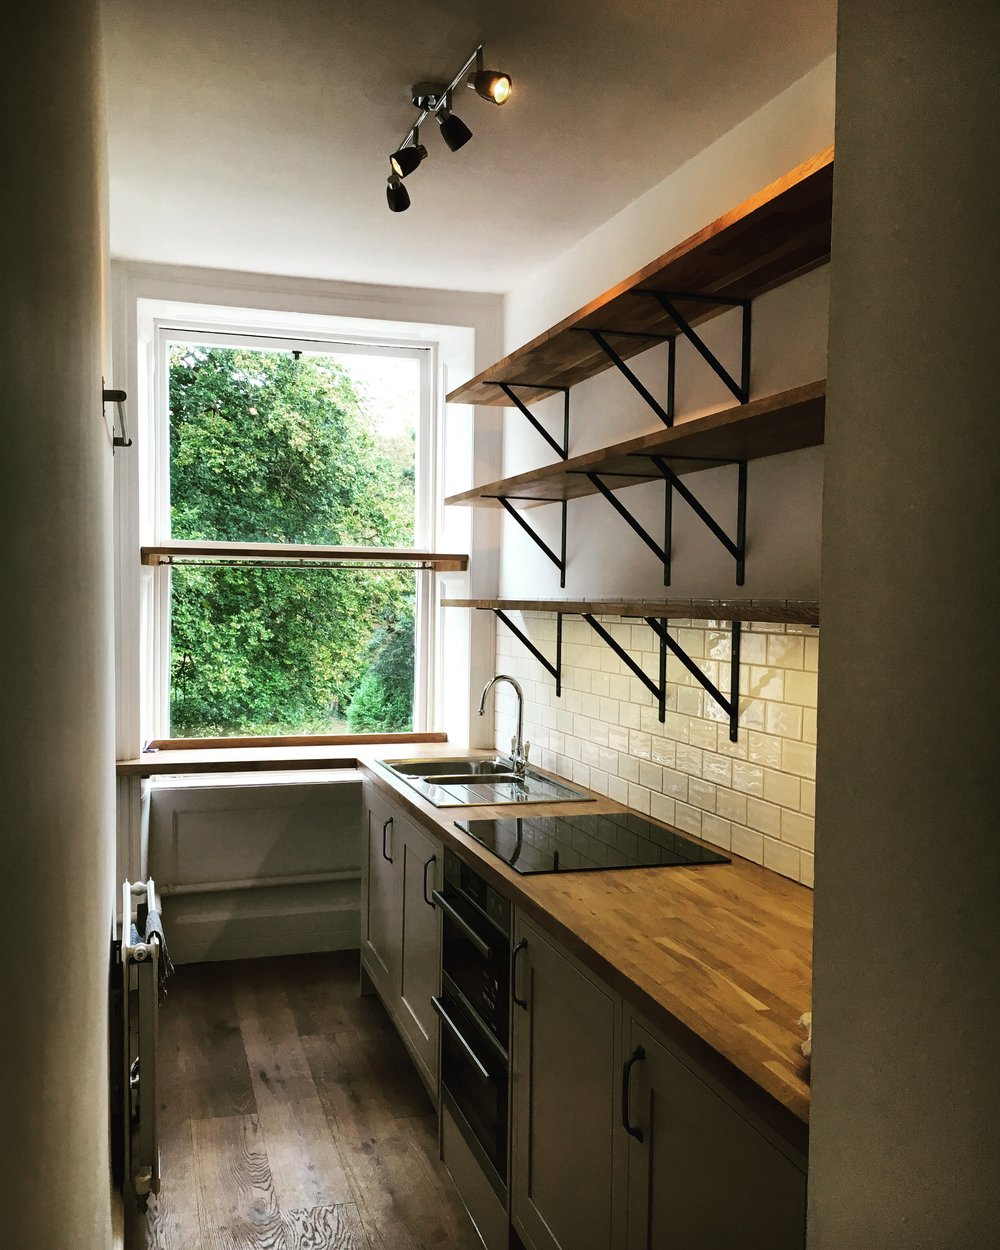 After: A fitted kitchen with integrated appliances, open shelving and new wooden flooring was part of the major renovation of this two bedroom Georgian apartment in the centre of Bath.